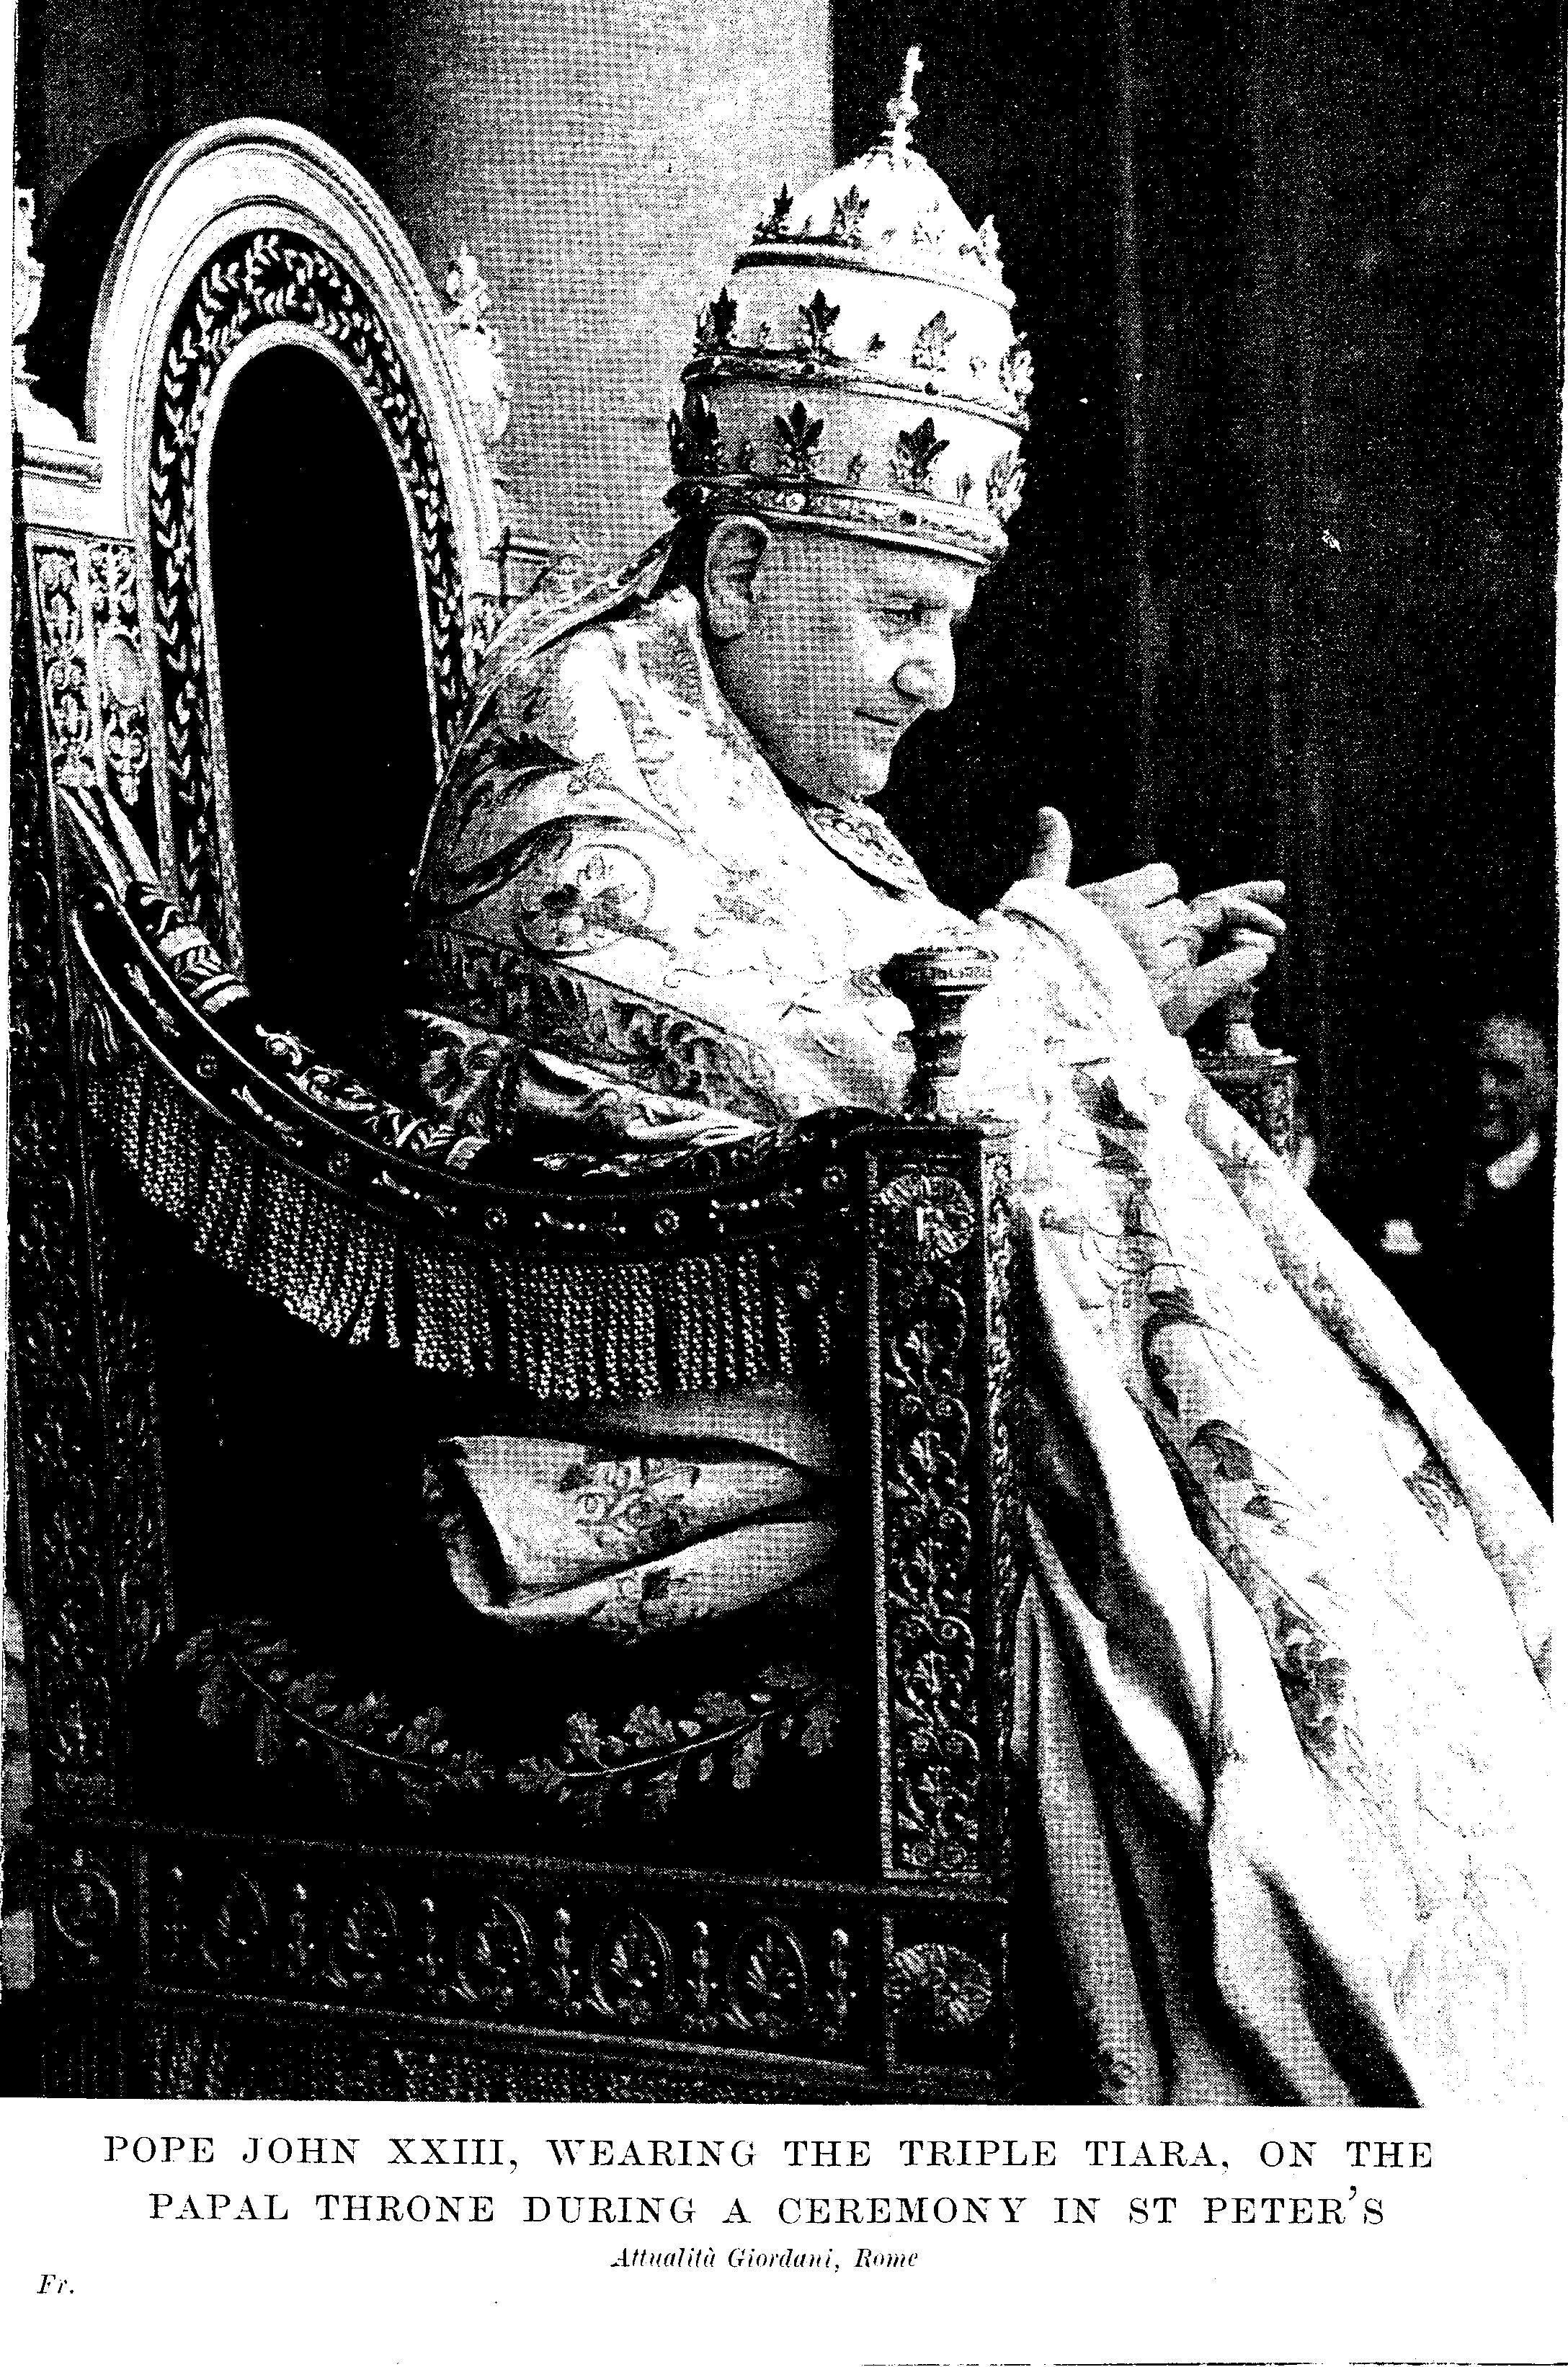 essay on pope john xxiii Open document below is an essay on pope john xxiii from anti essays, your source for research papers, essays, and term paper examples.